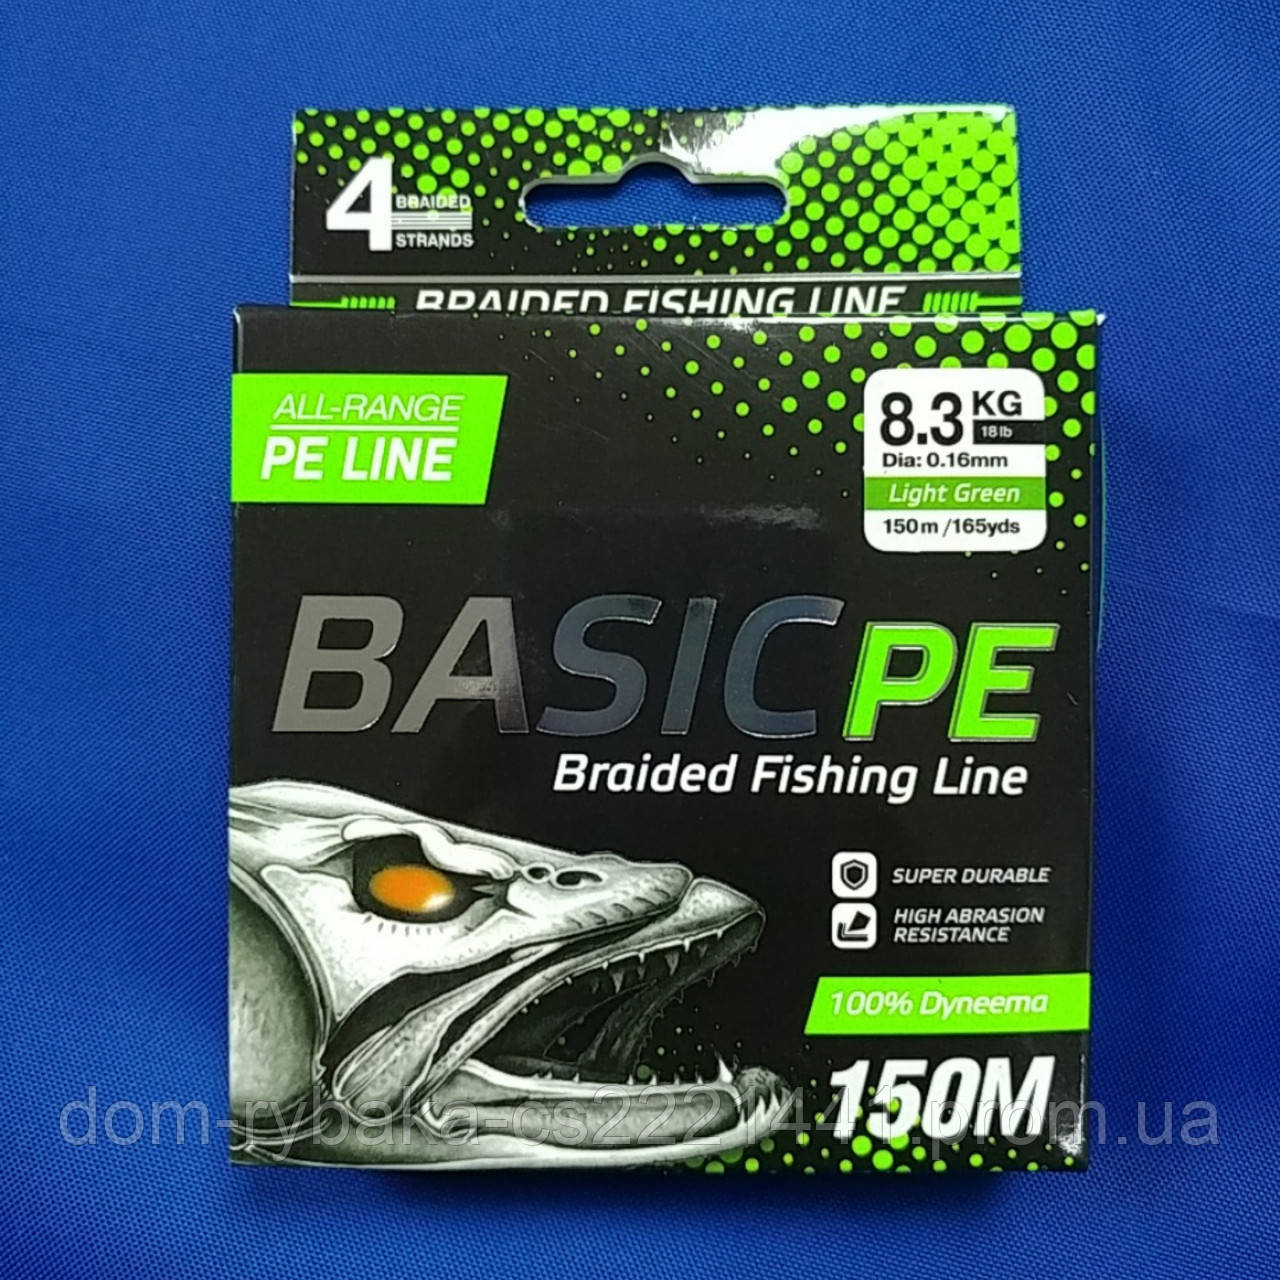 Шнур Select Basic PE Light Green 0.16мм 8.3кг 150м (1110373)